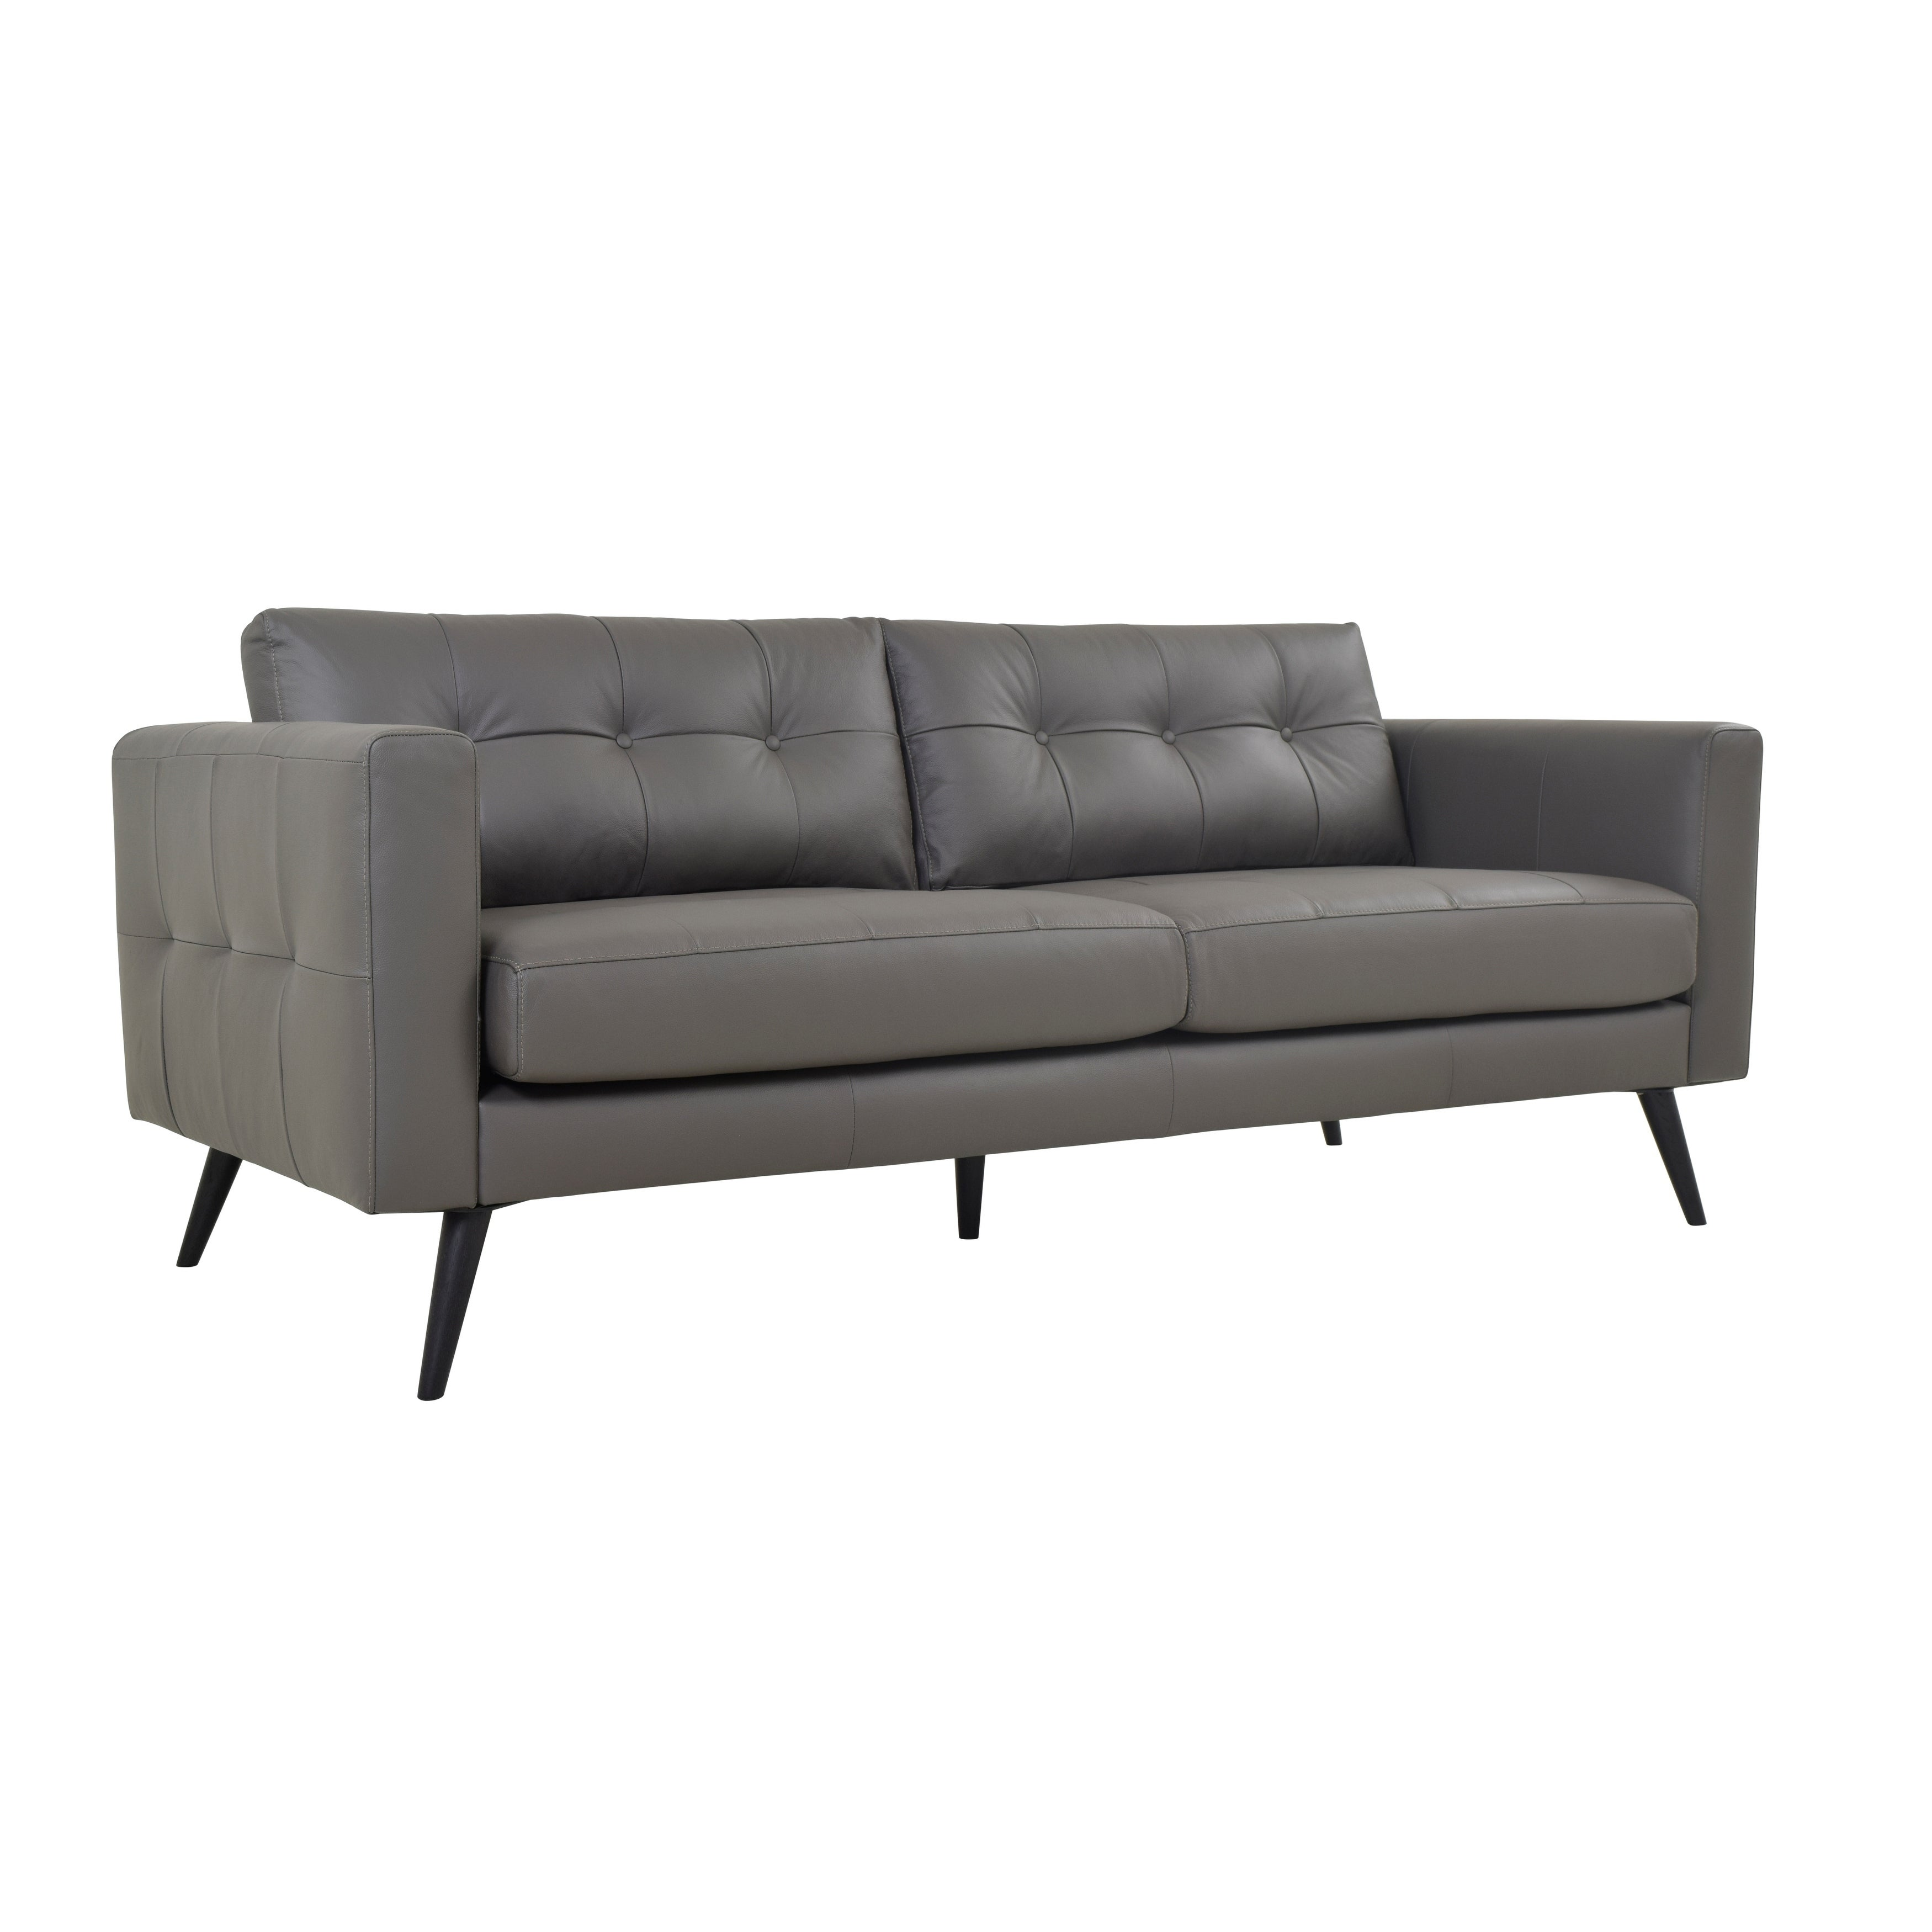 Aurelle Home Scandinavian Soft Leather Sofa On Free Shipping Today 18706992